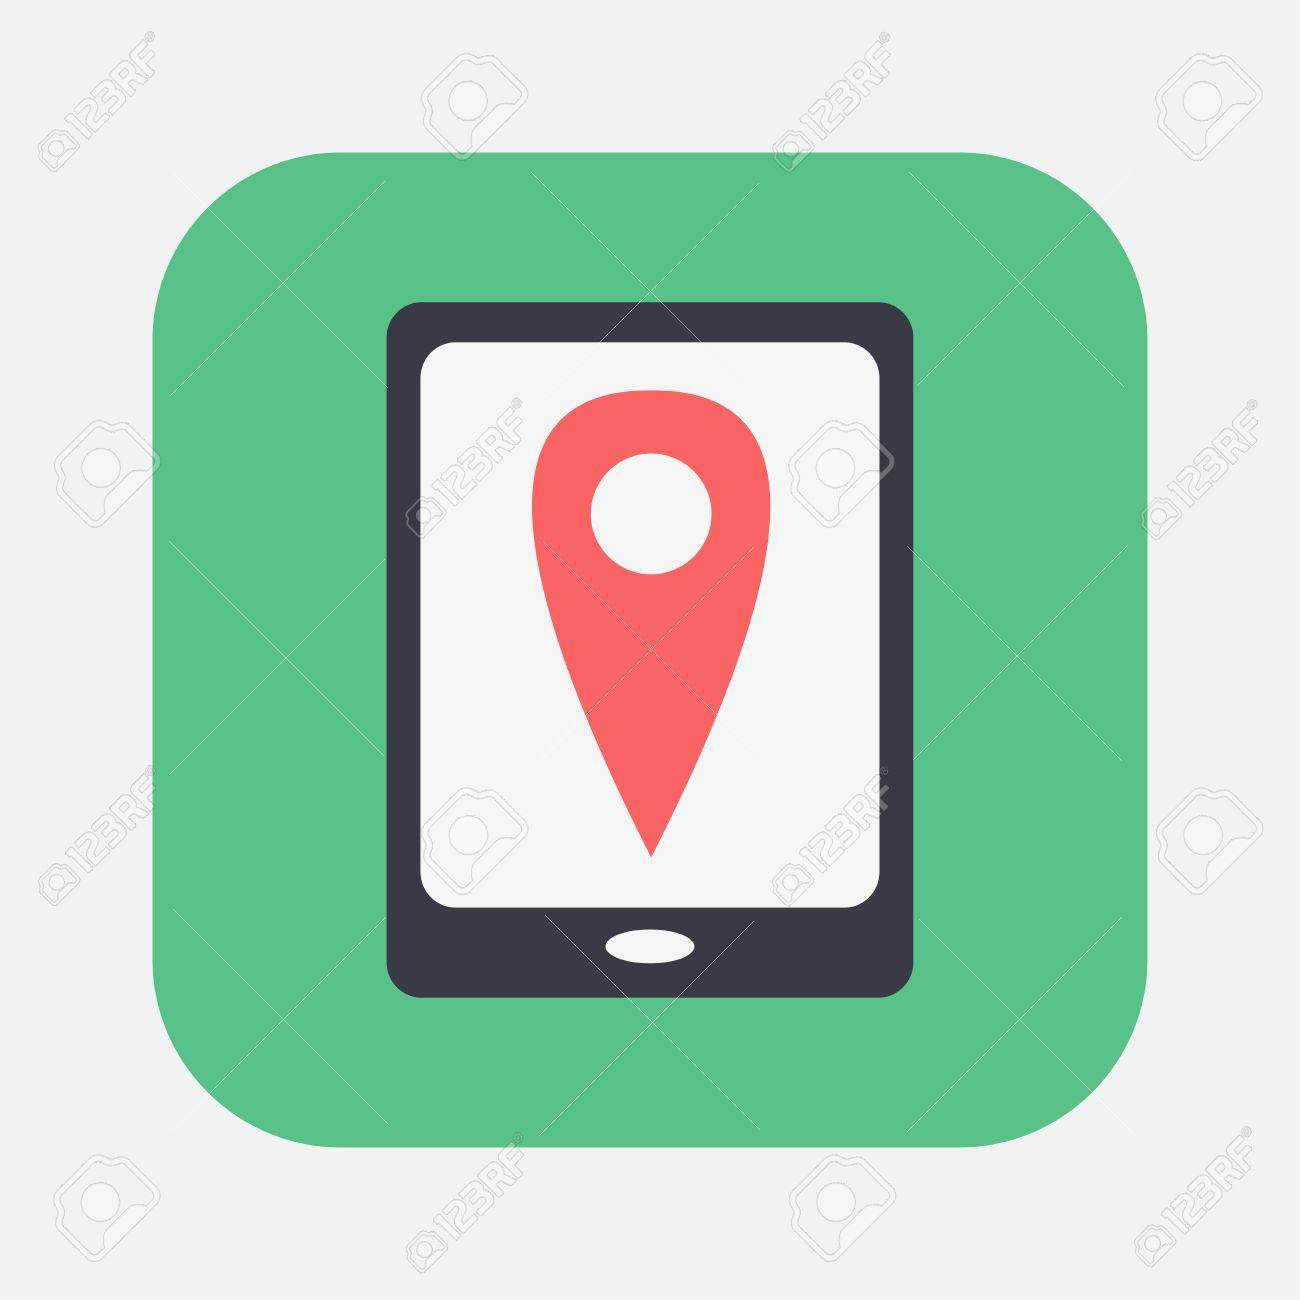 gps icon Stock Vector - 26179829